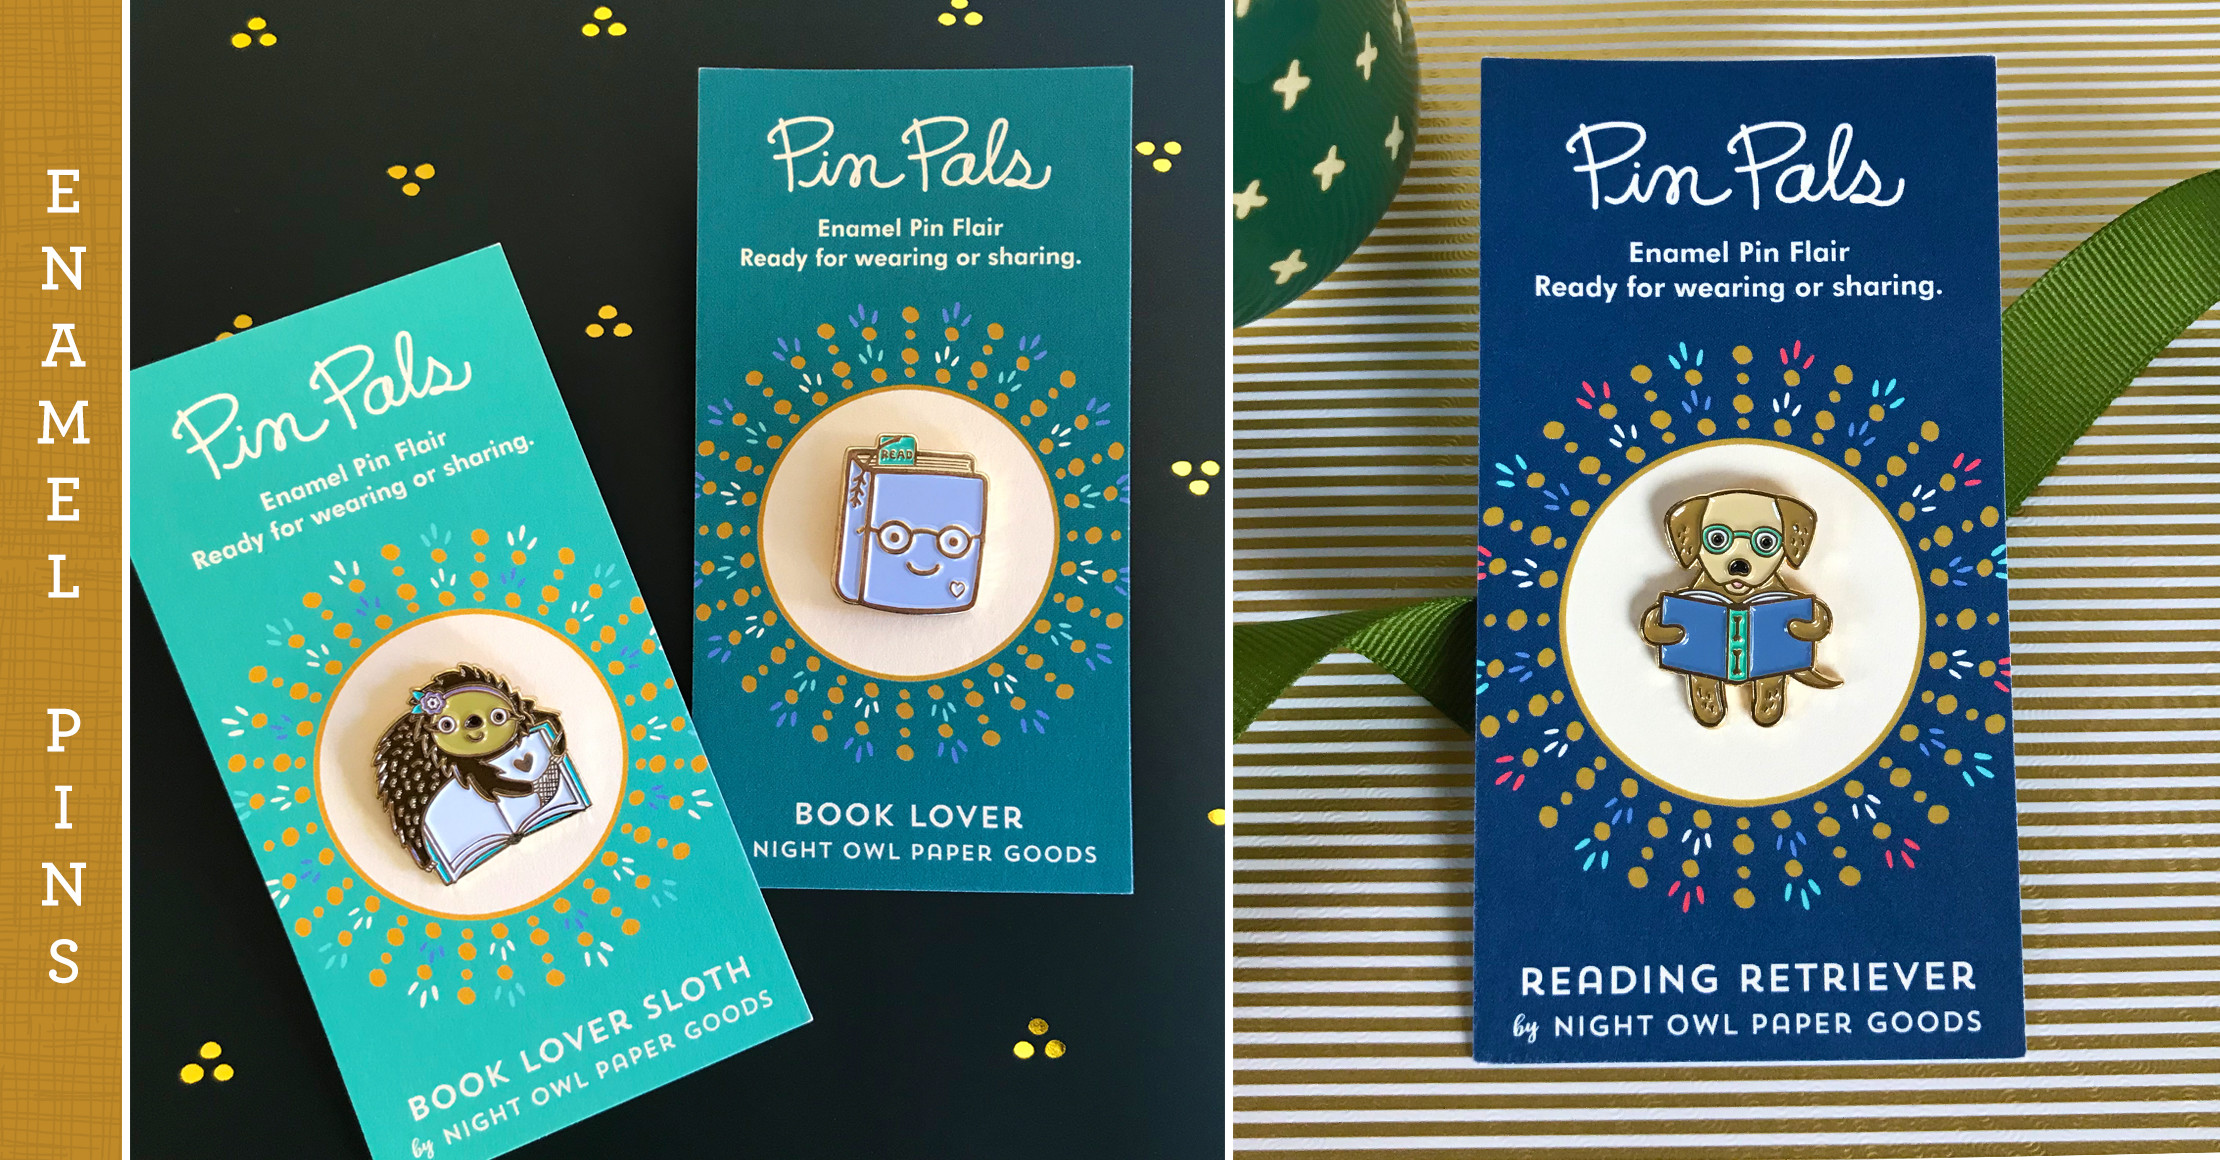 Pins for Book Lovers